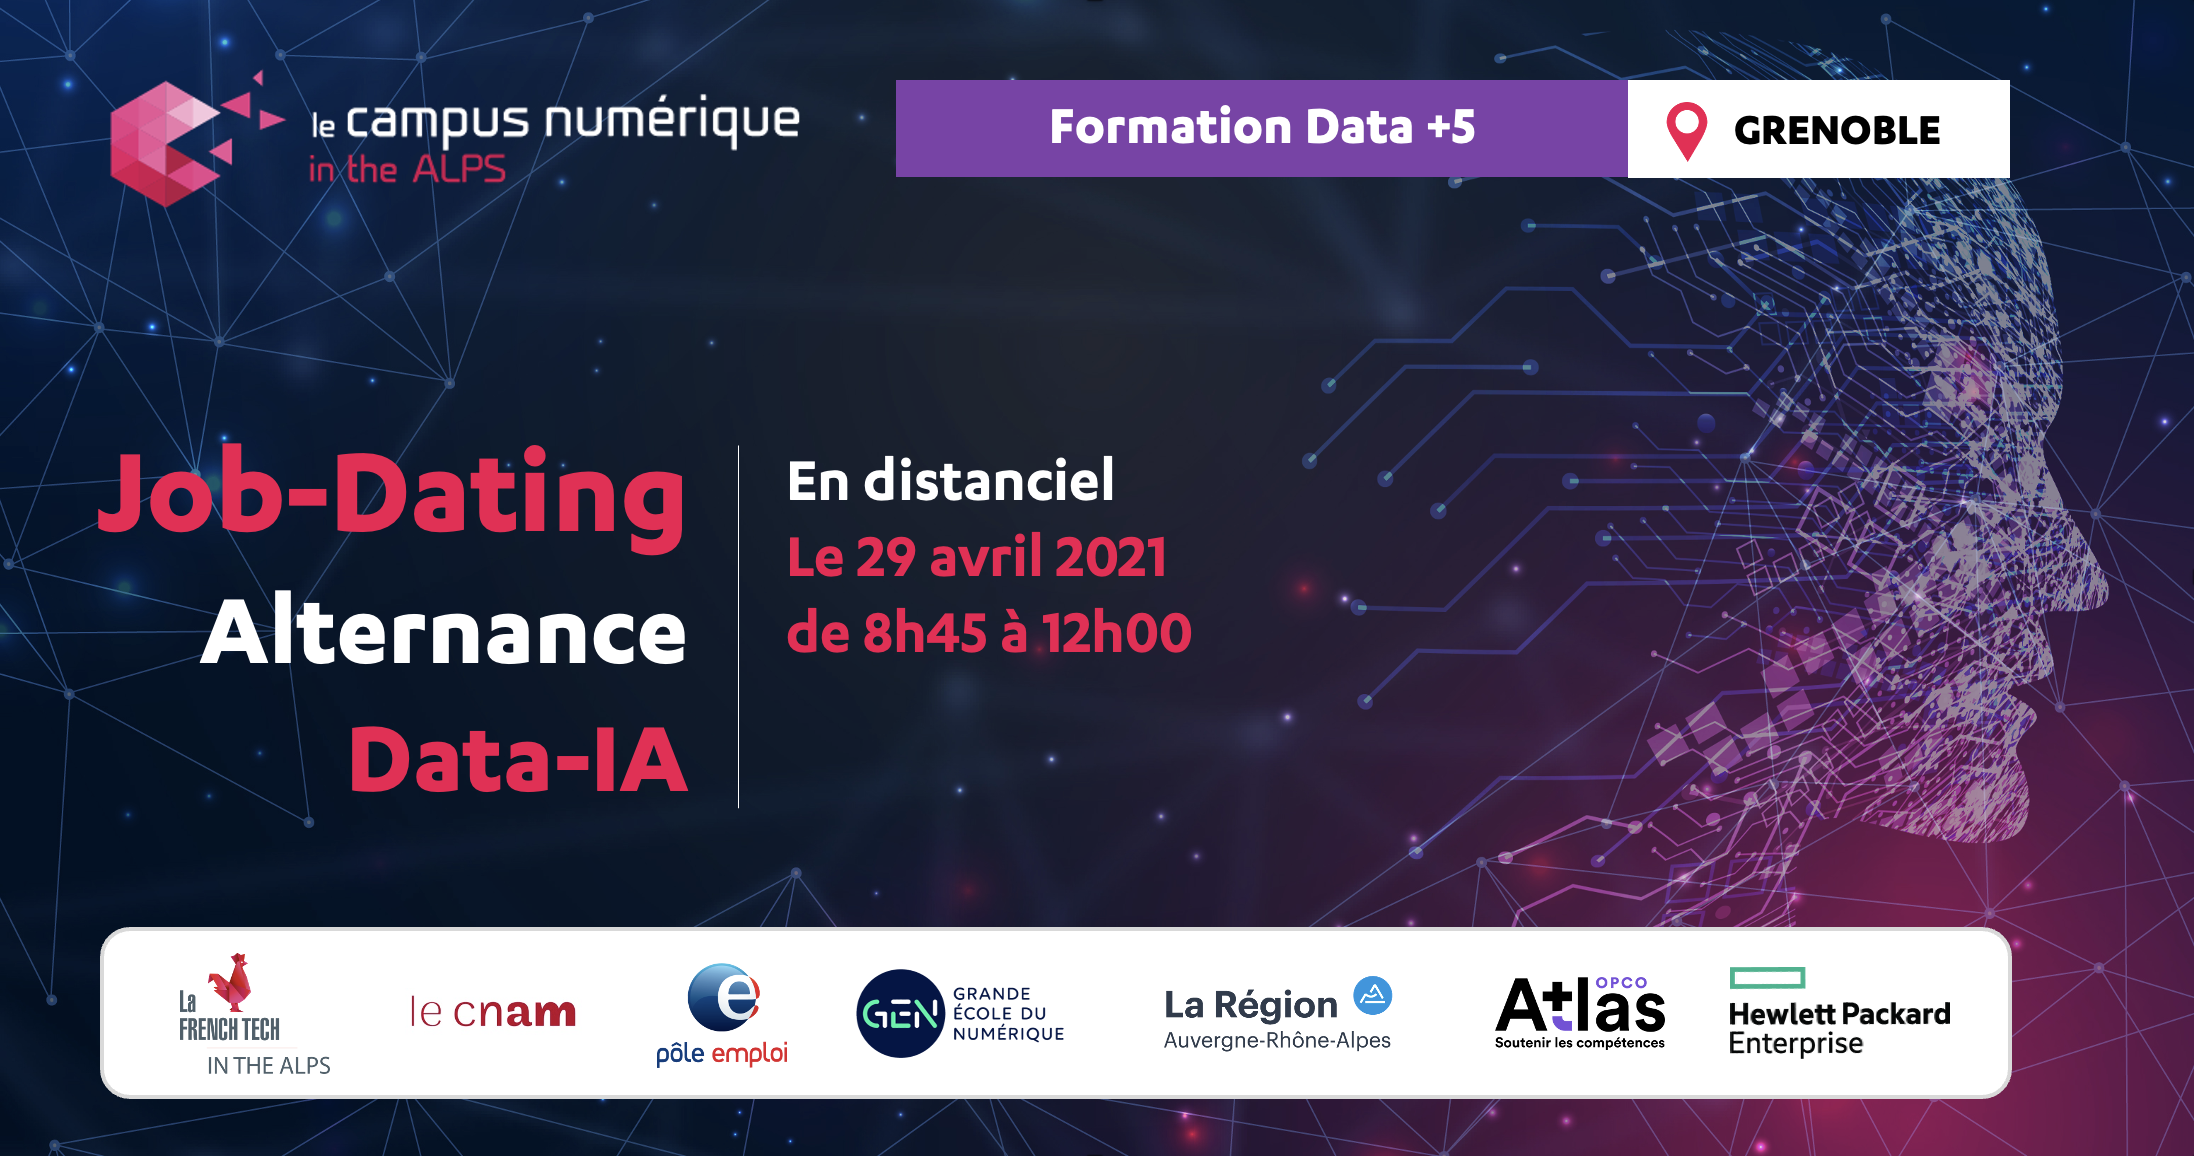 Job Dating -Alternance des Data Analyst/Scientist du Campus Numérique in the Alps de Grenoble